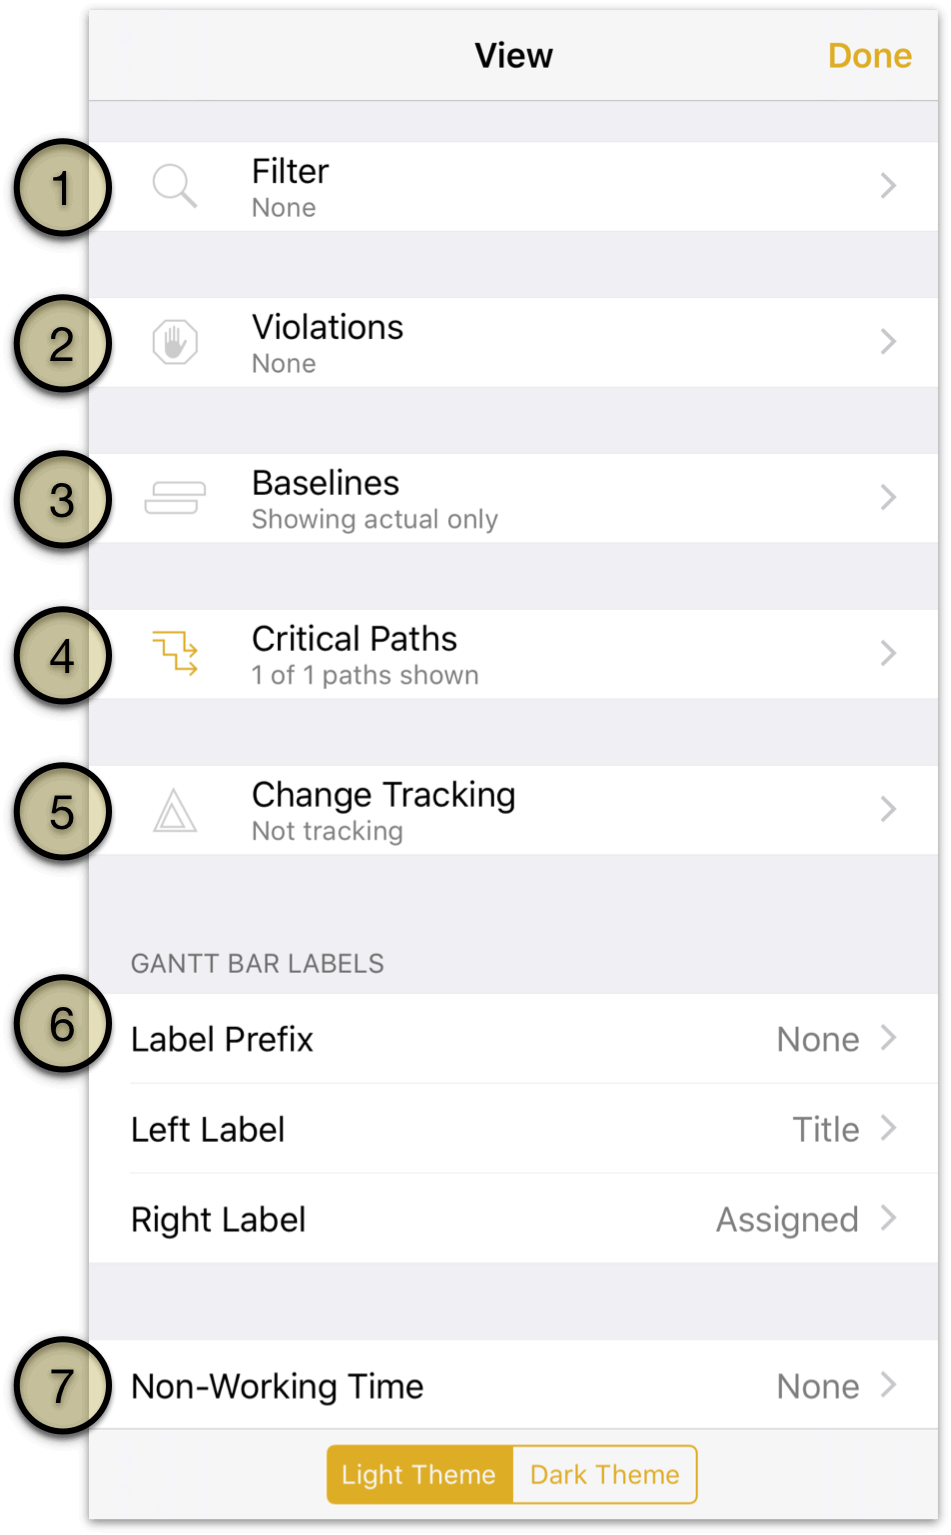 OmniPlan 3 for iOS User Manual - Working in the Project Editor